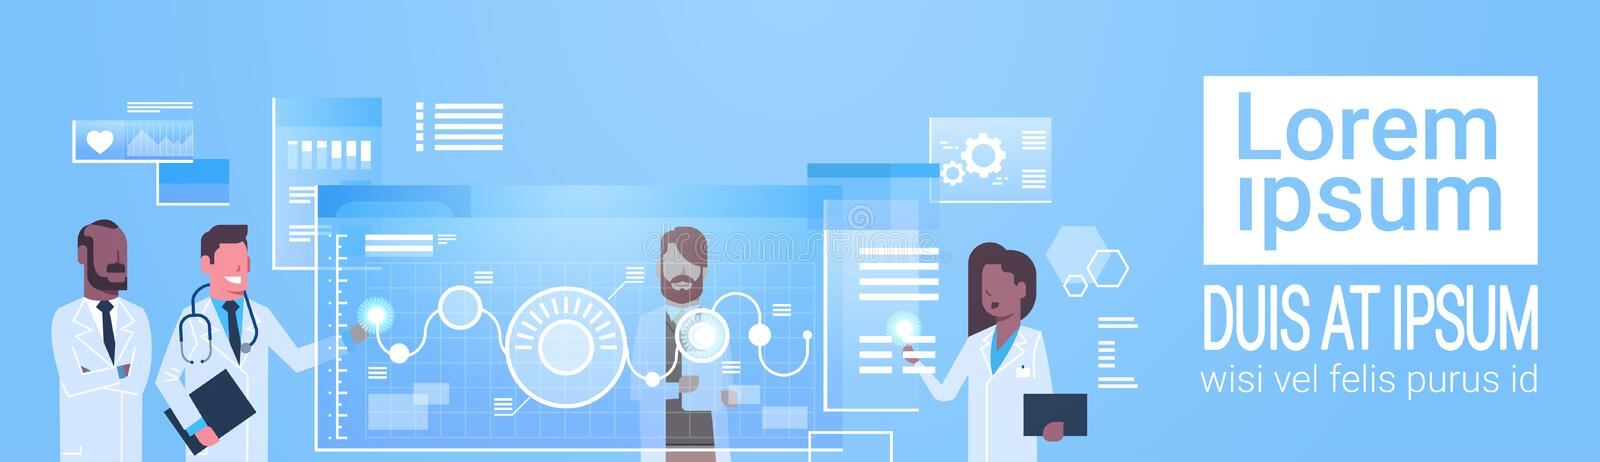 Doctors Group Use Virtual Computer Interface Innovation Technology Concept Modern Medical Treatment. Flat Vector Illustration royalty free illustration